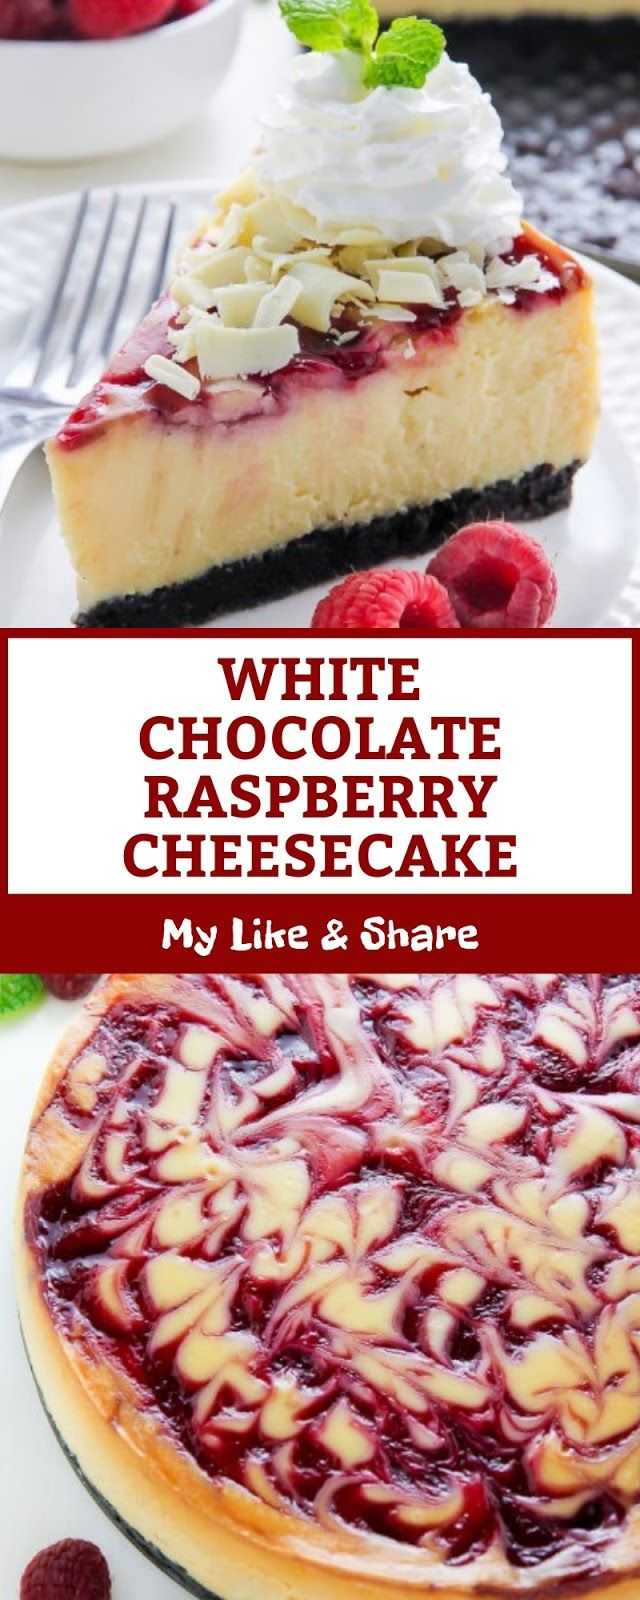 WHITE CHOCOLATE RASPBERRY CHEESECAKE #whitechocolateraspberrycheesecake